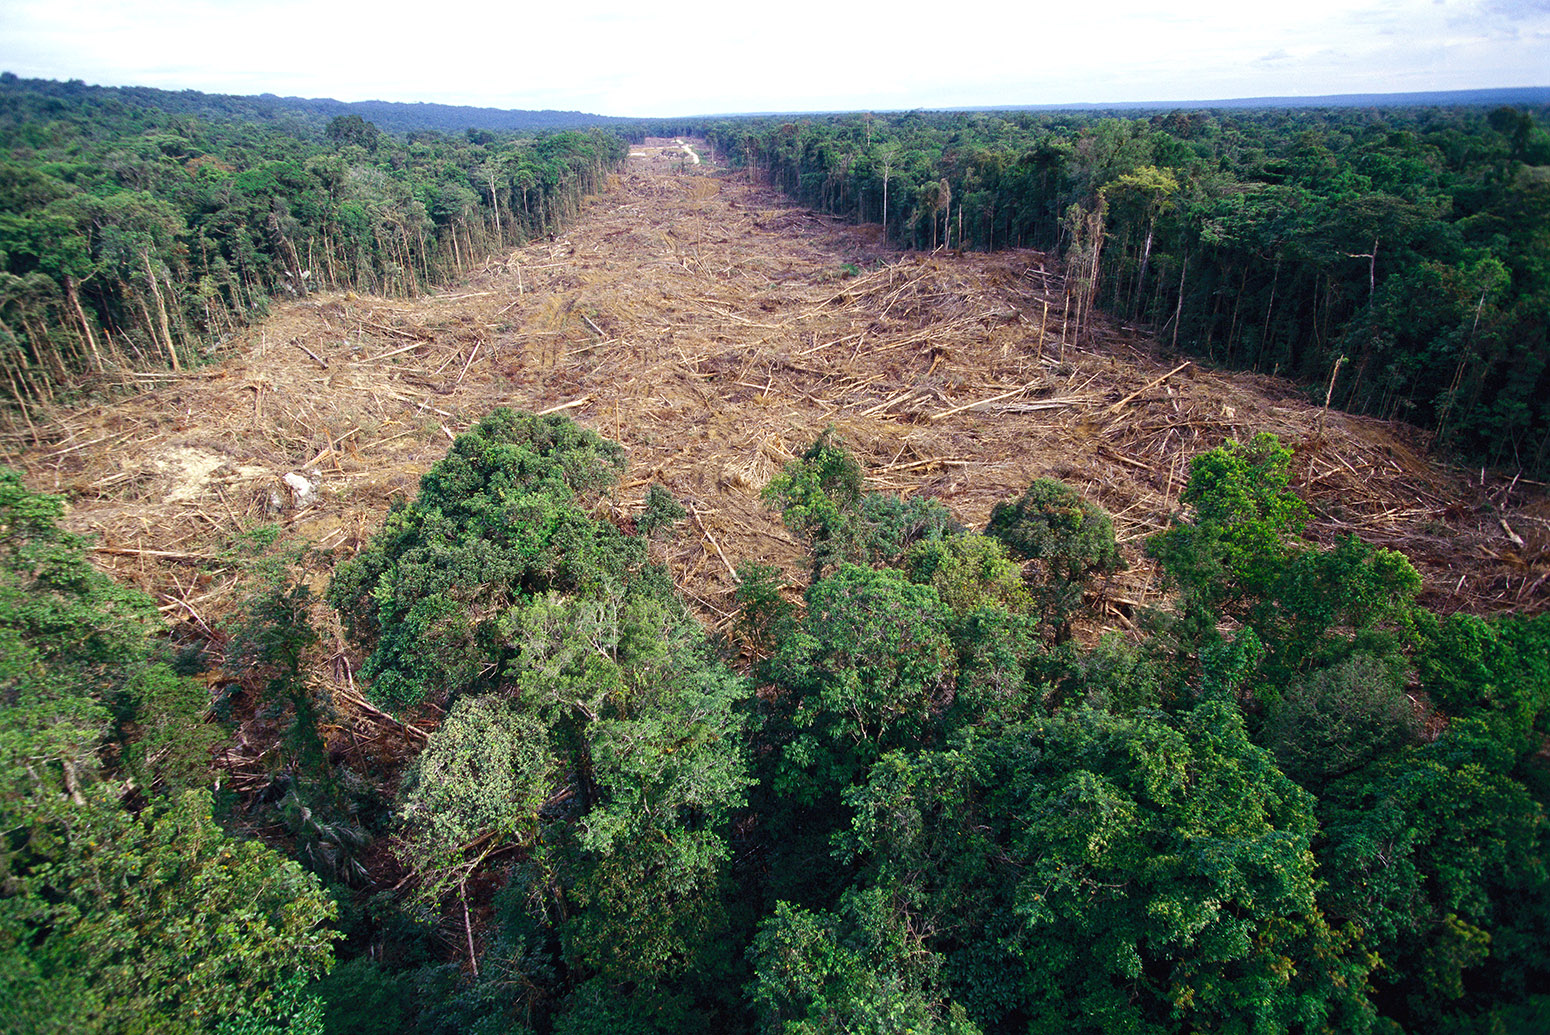 deforestation is occurring all over the world, with all types of forests, and is one of the top environmental issues today. Deforestation Has Driven Up Hottest Day Temperatures Study Says Carbon Brief